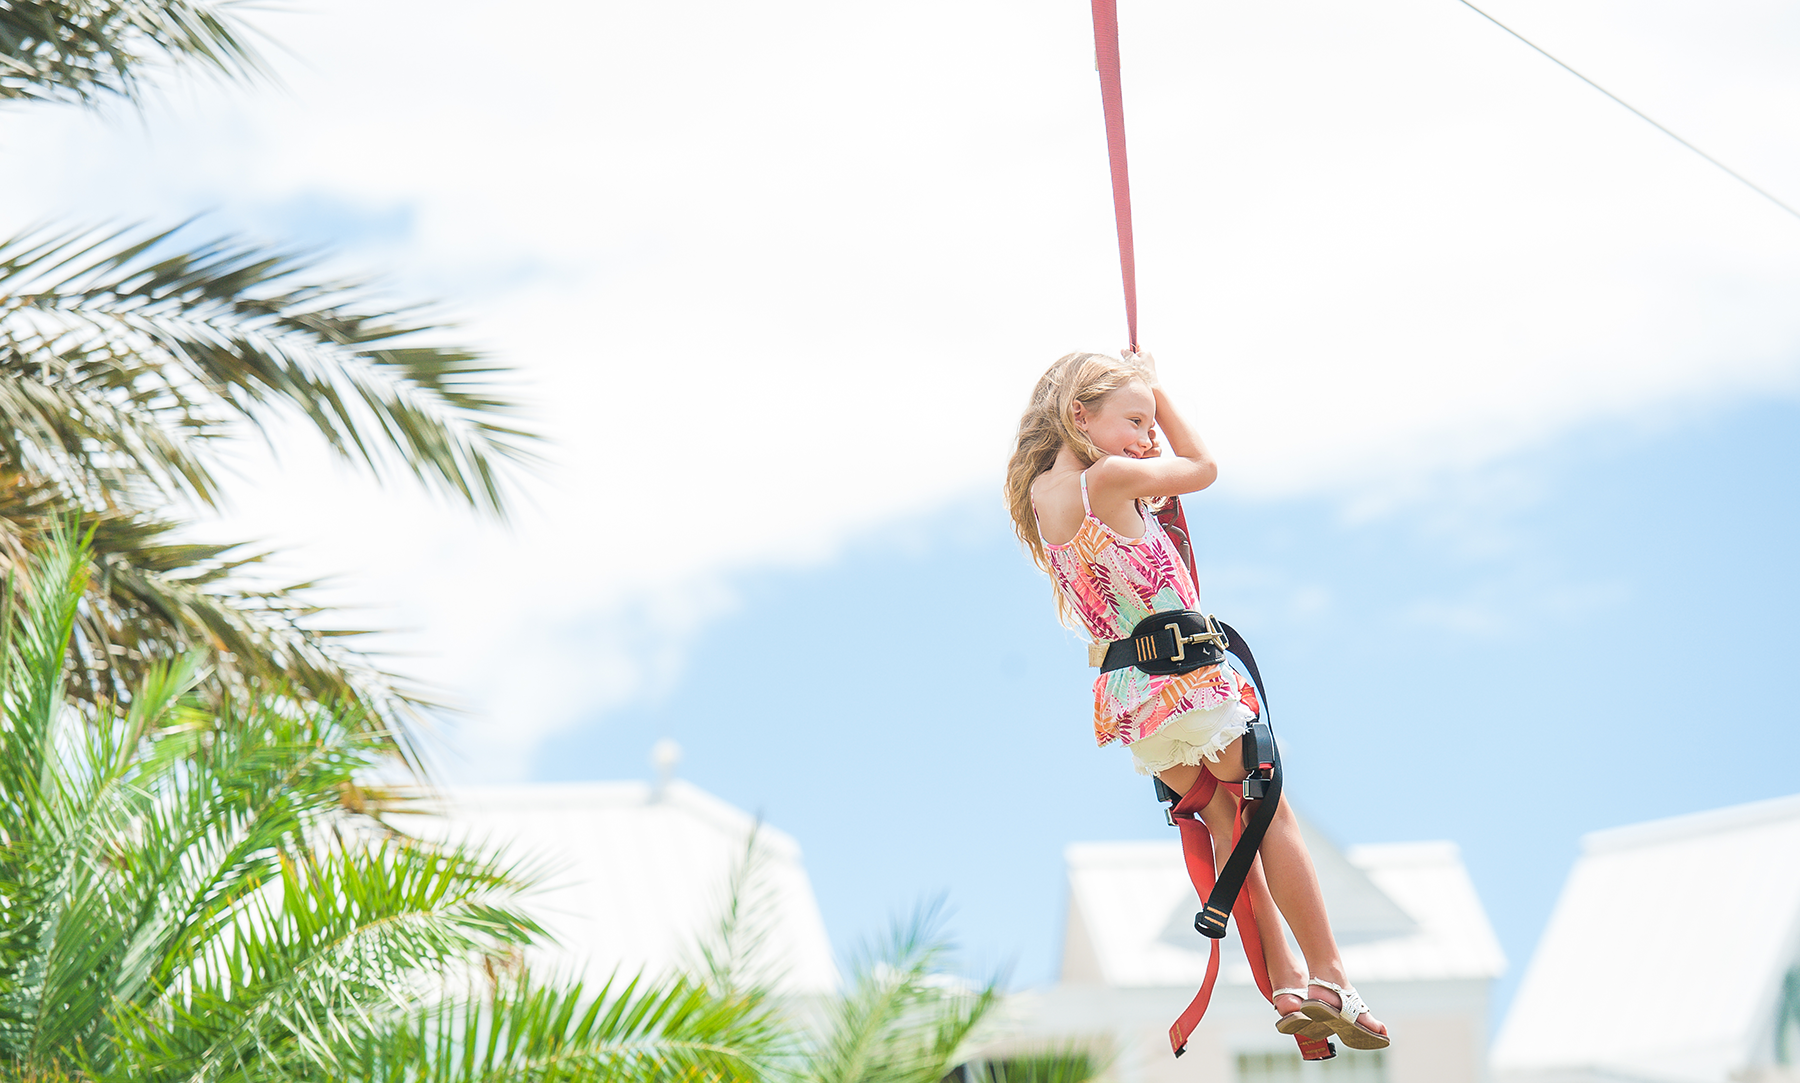 Little Girl on Zipline